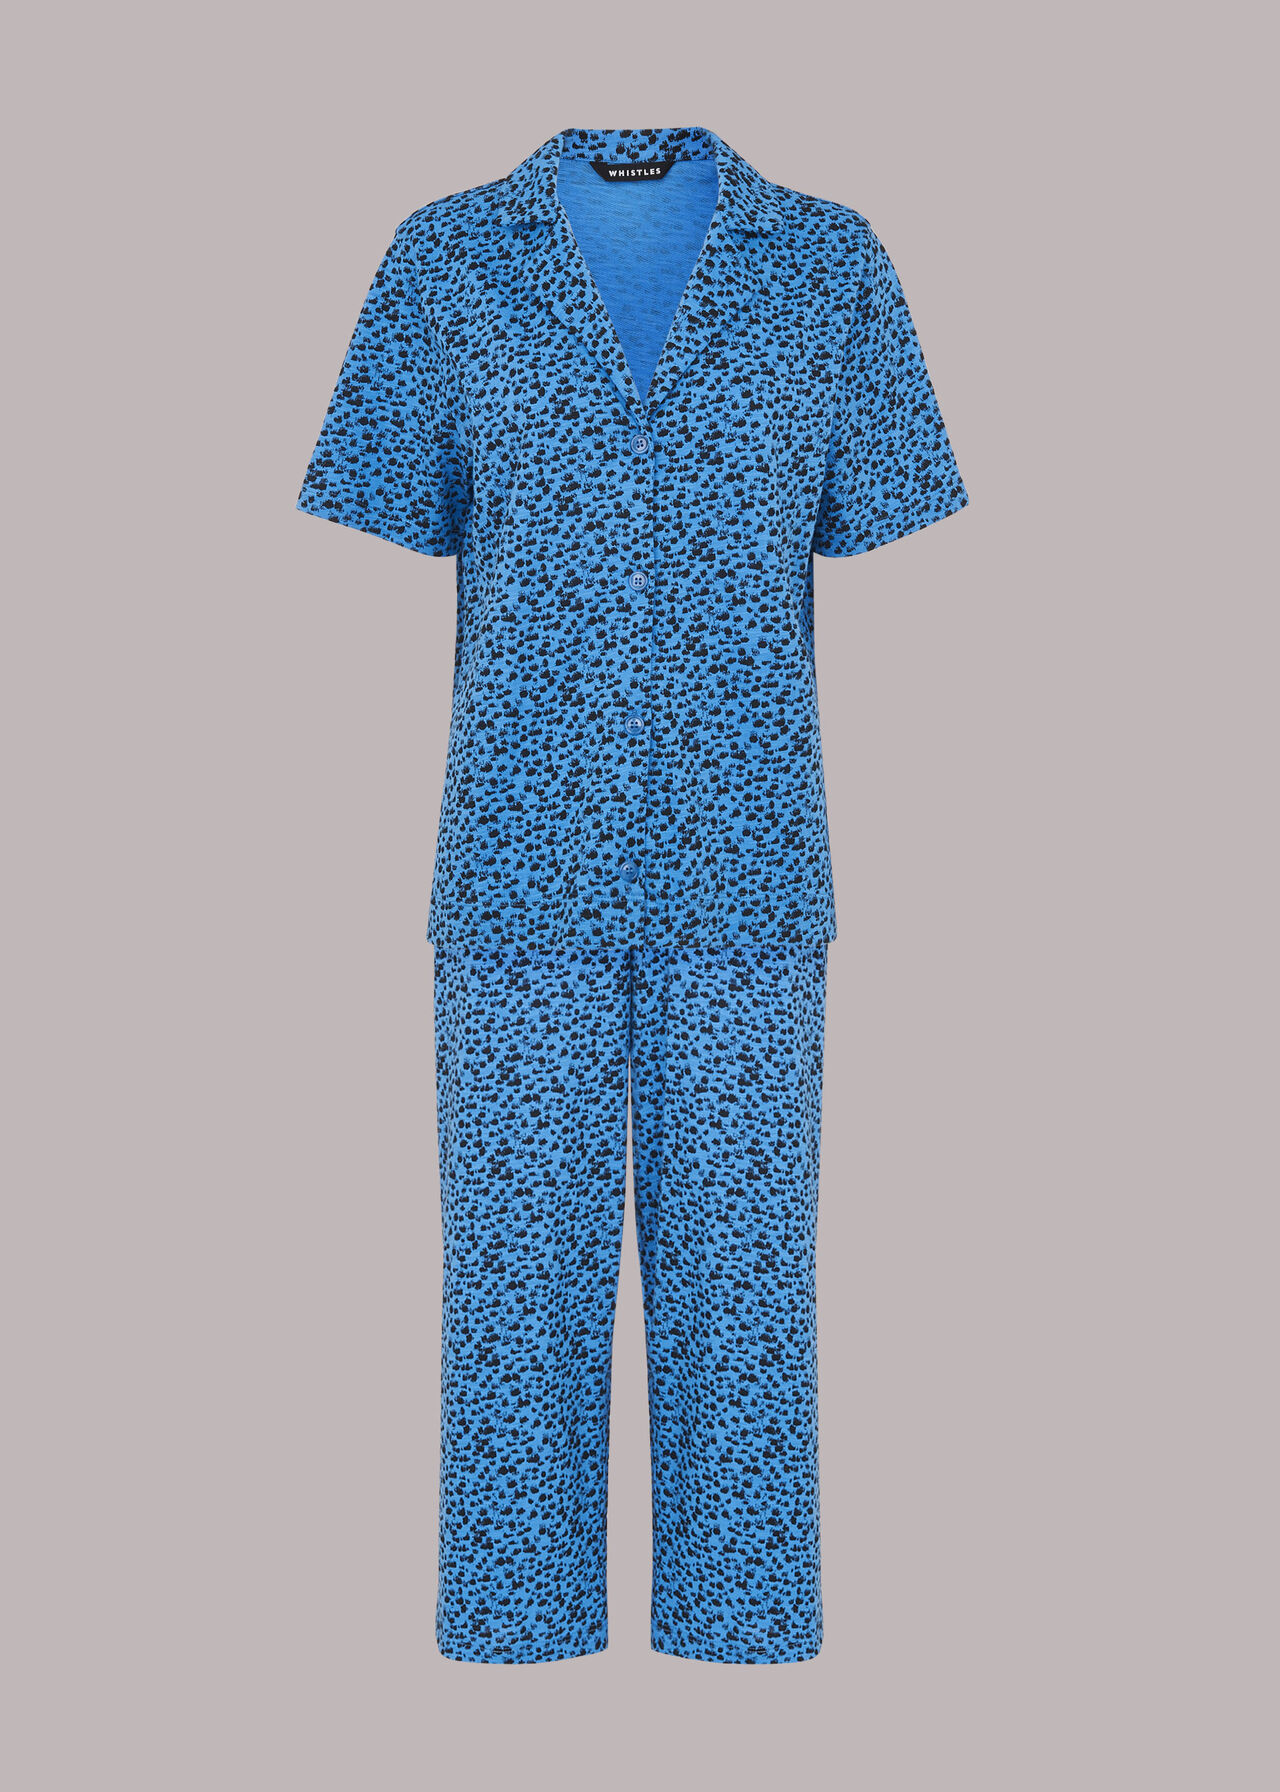 Brushmark Animal Print Pyjamas